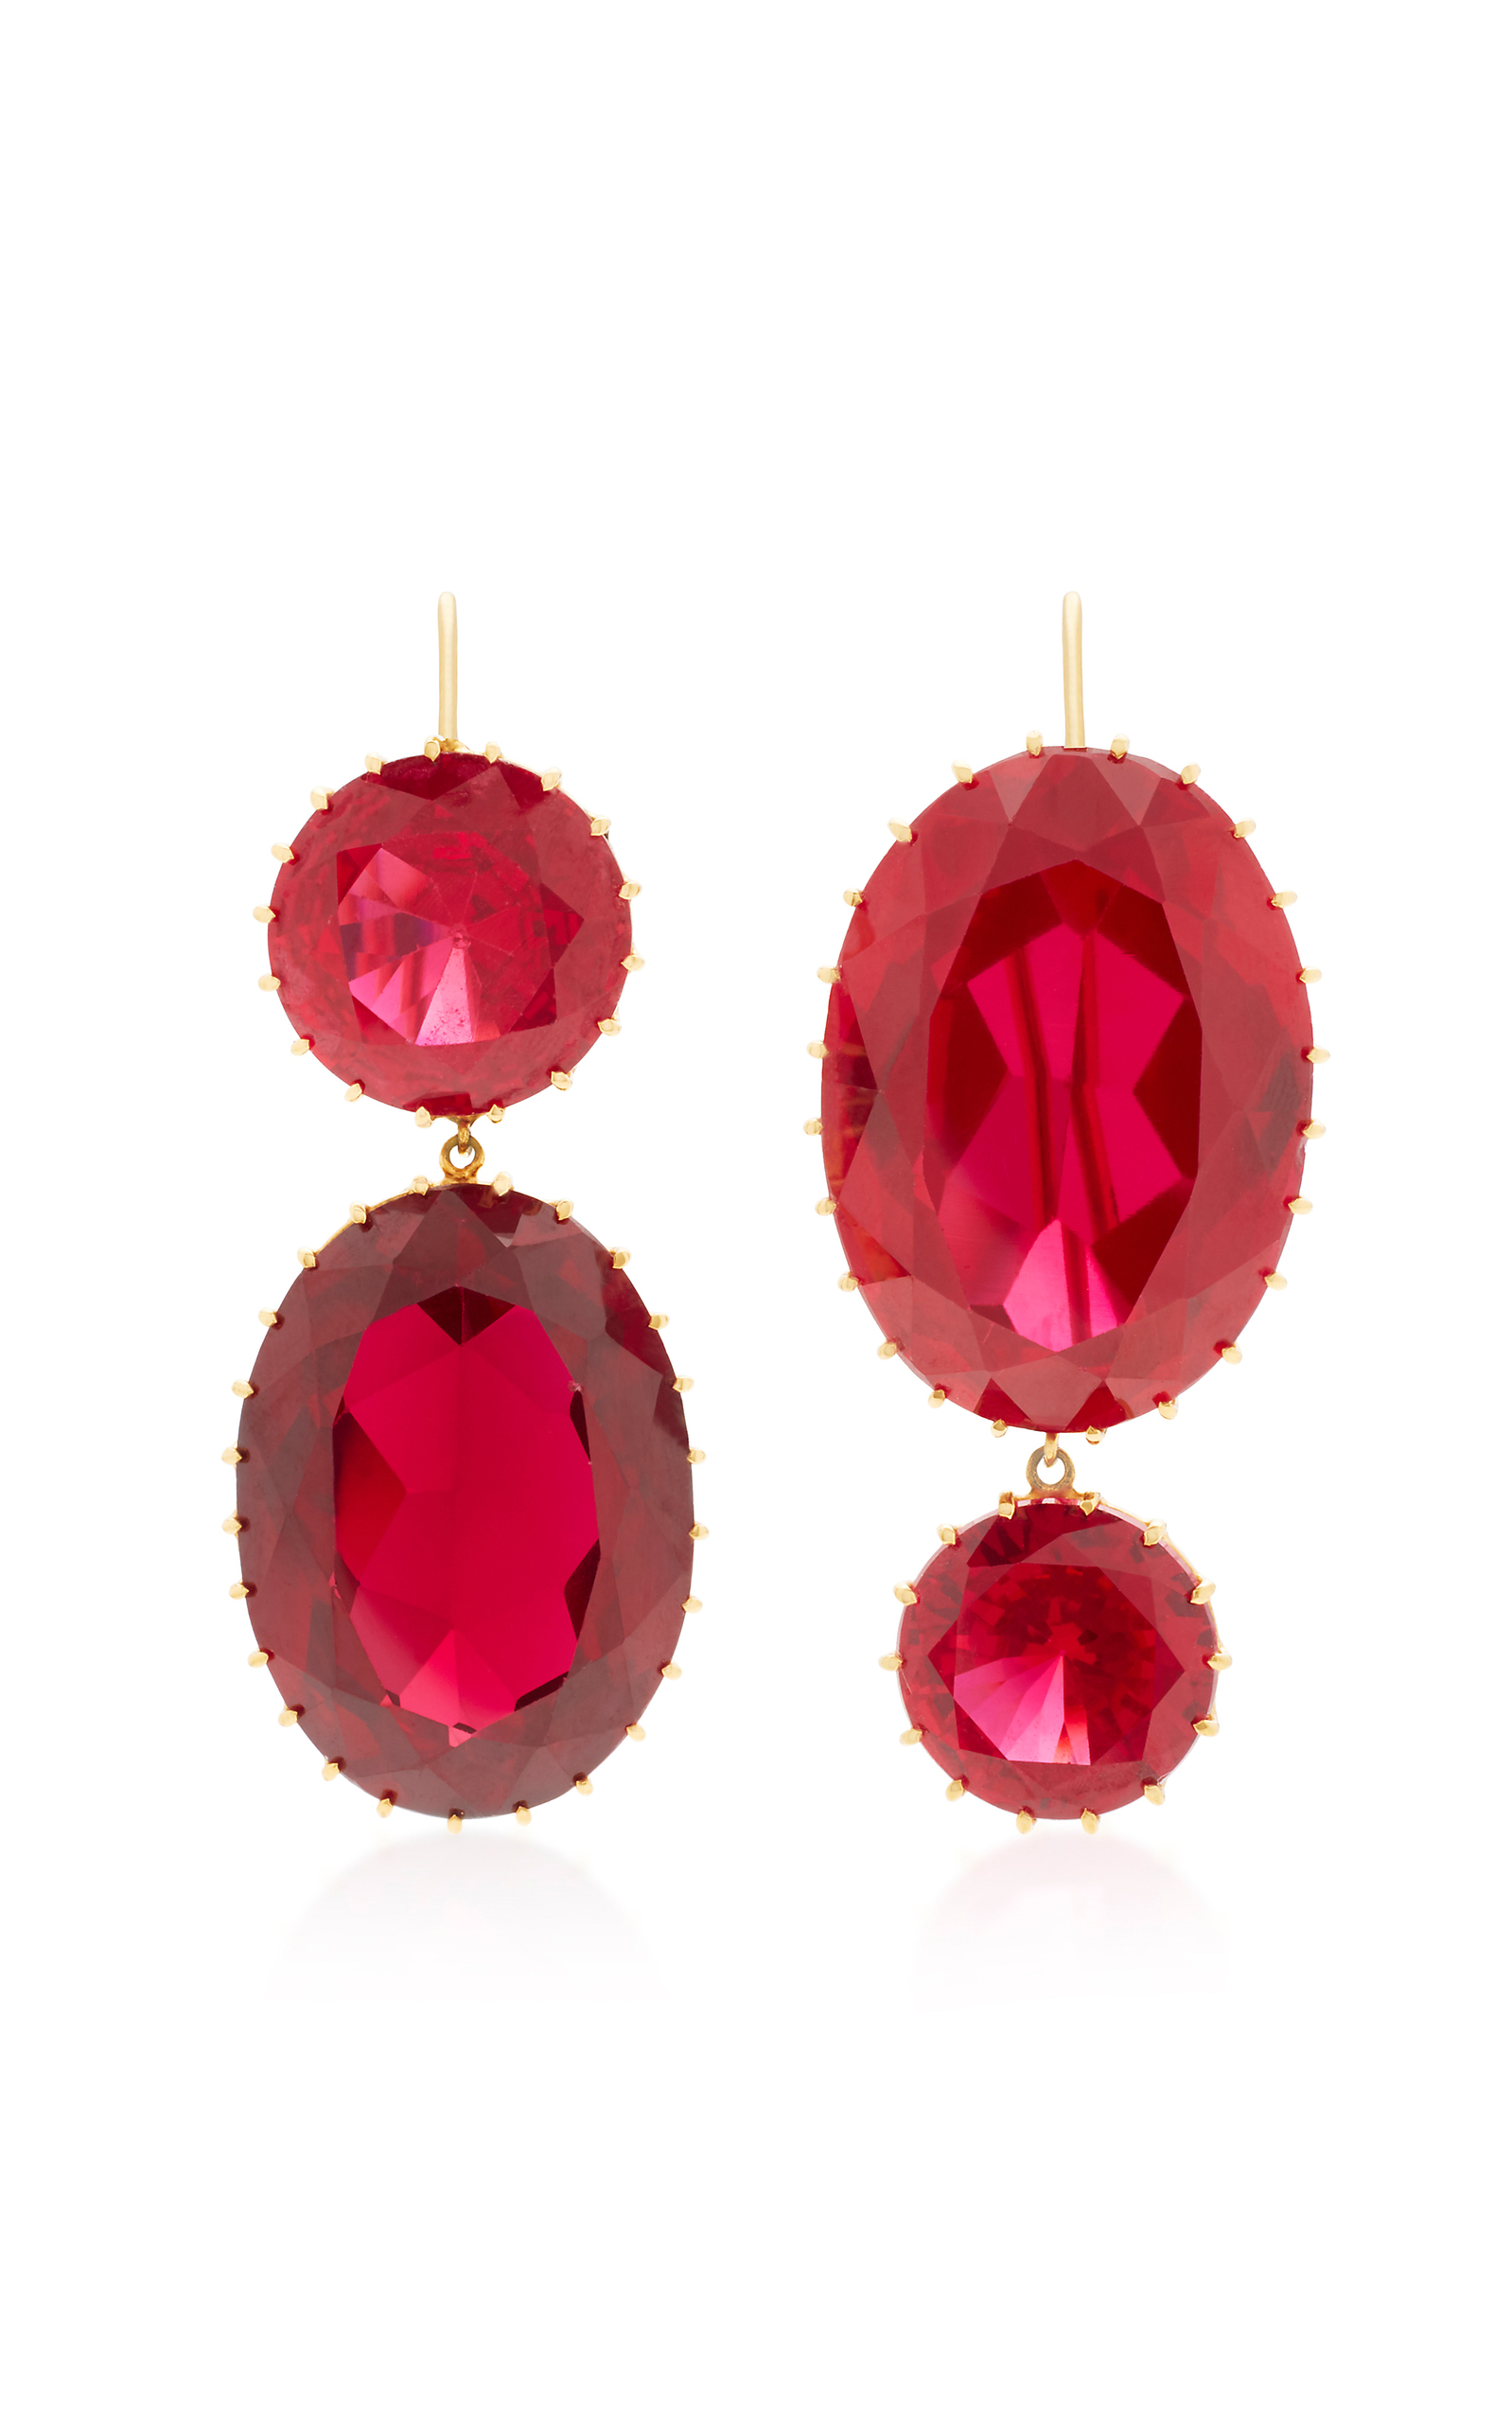 dubai ruby hardy jewellery gemfields trending joanna unveils regalia earrings